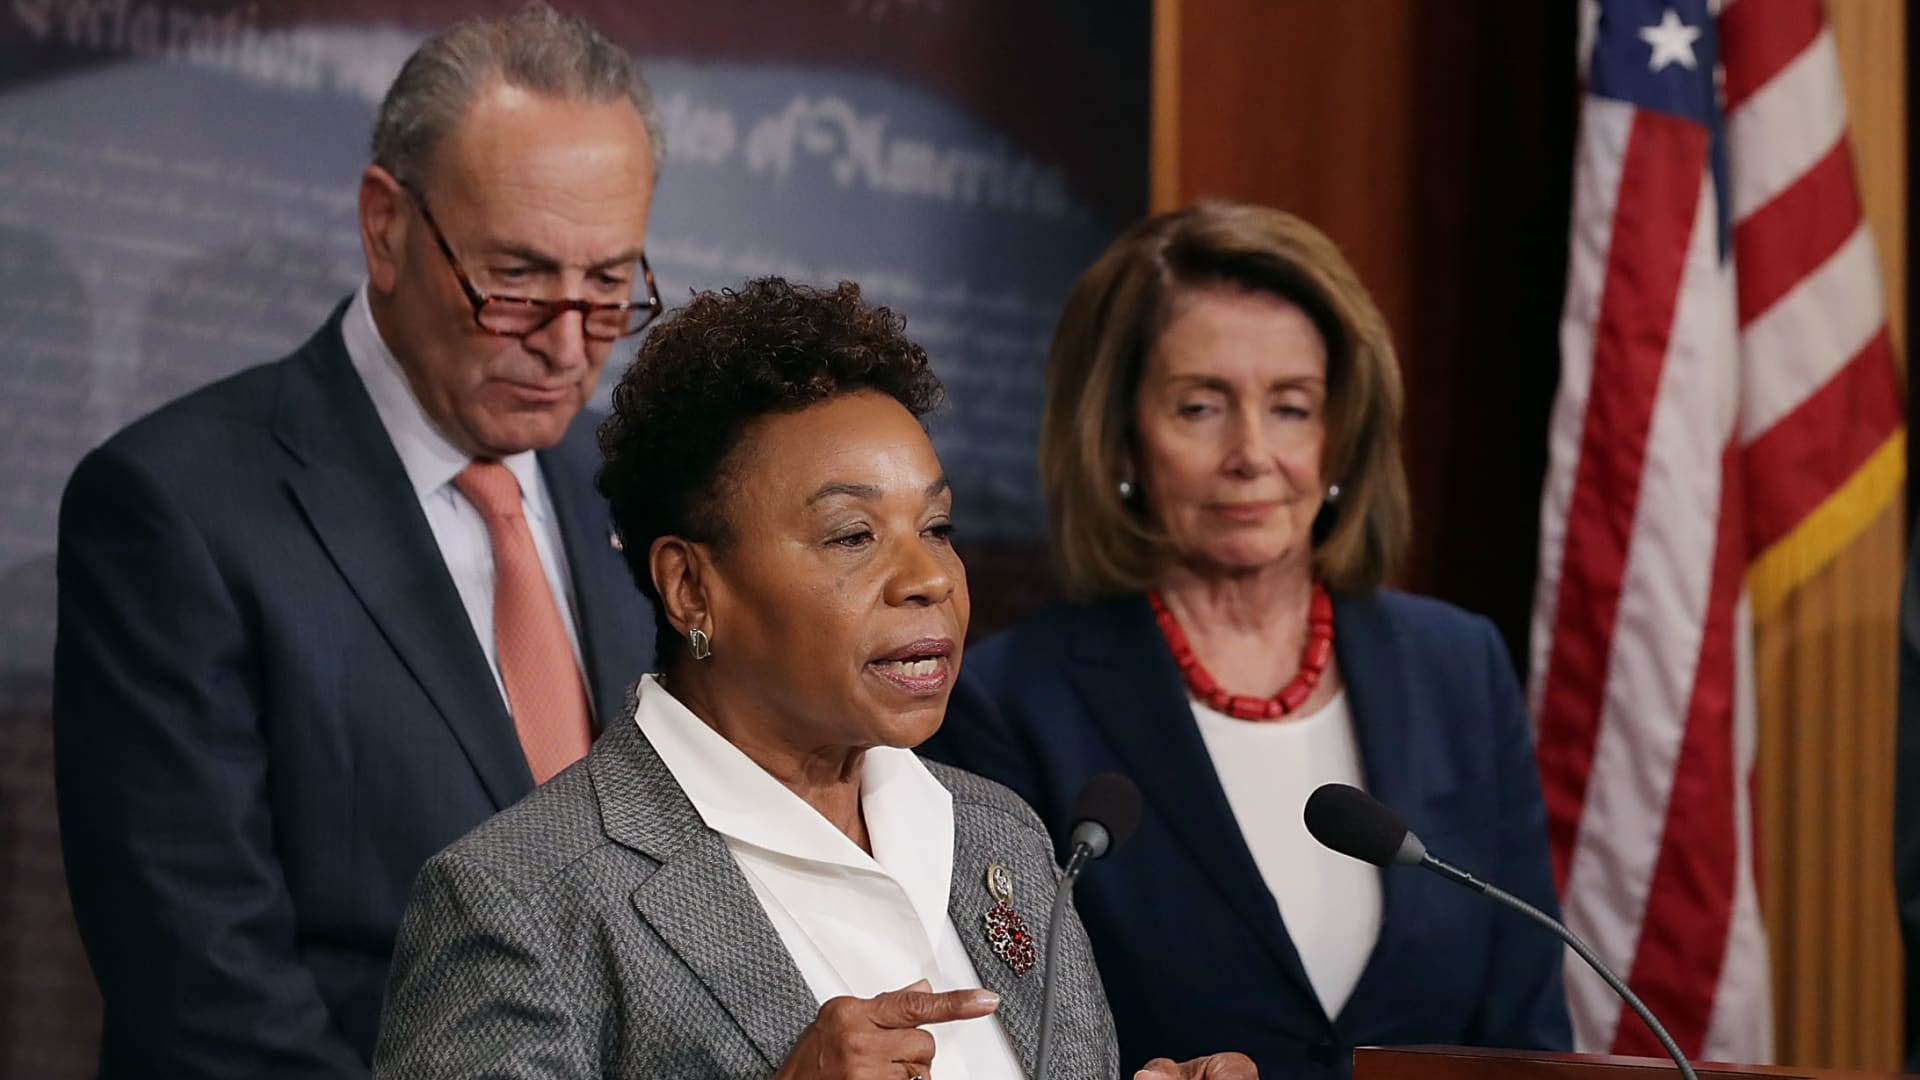 (R) Senate Minority Leader Chuck Schumer (D-NY), Rep. Barbara Lee (D-CA), House Minority Leader Nancy Pelosi (D-CA) hold a news conference critical at the U.S. Capitol October 4, 2017 in Washington, DC.